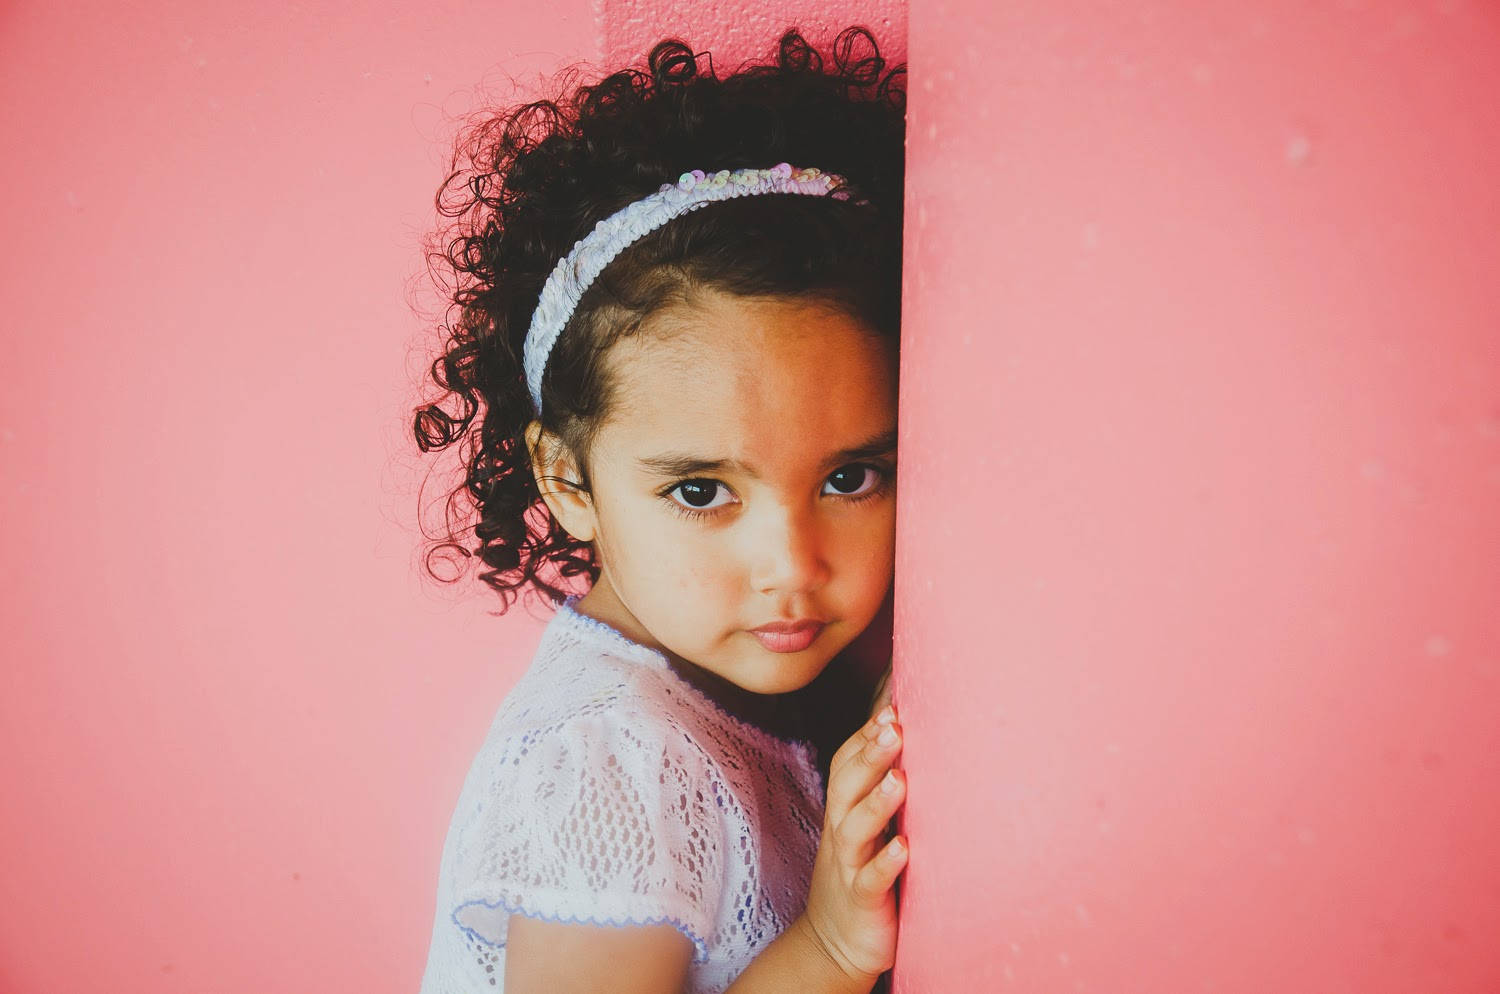 cute picture of a girl on a pink background in indianapolis, fishers, carmel